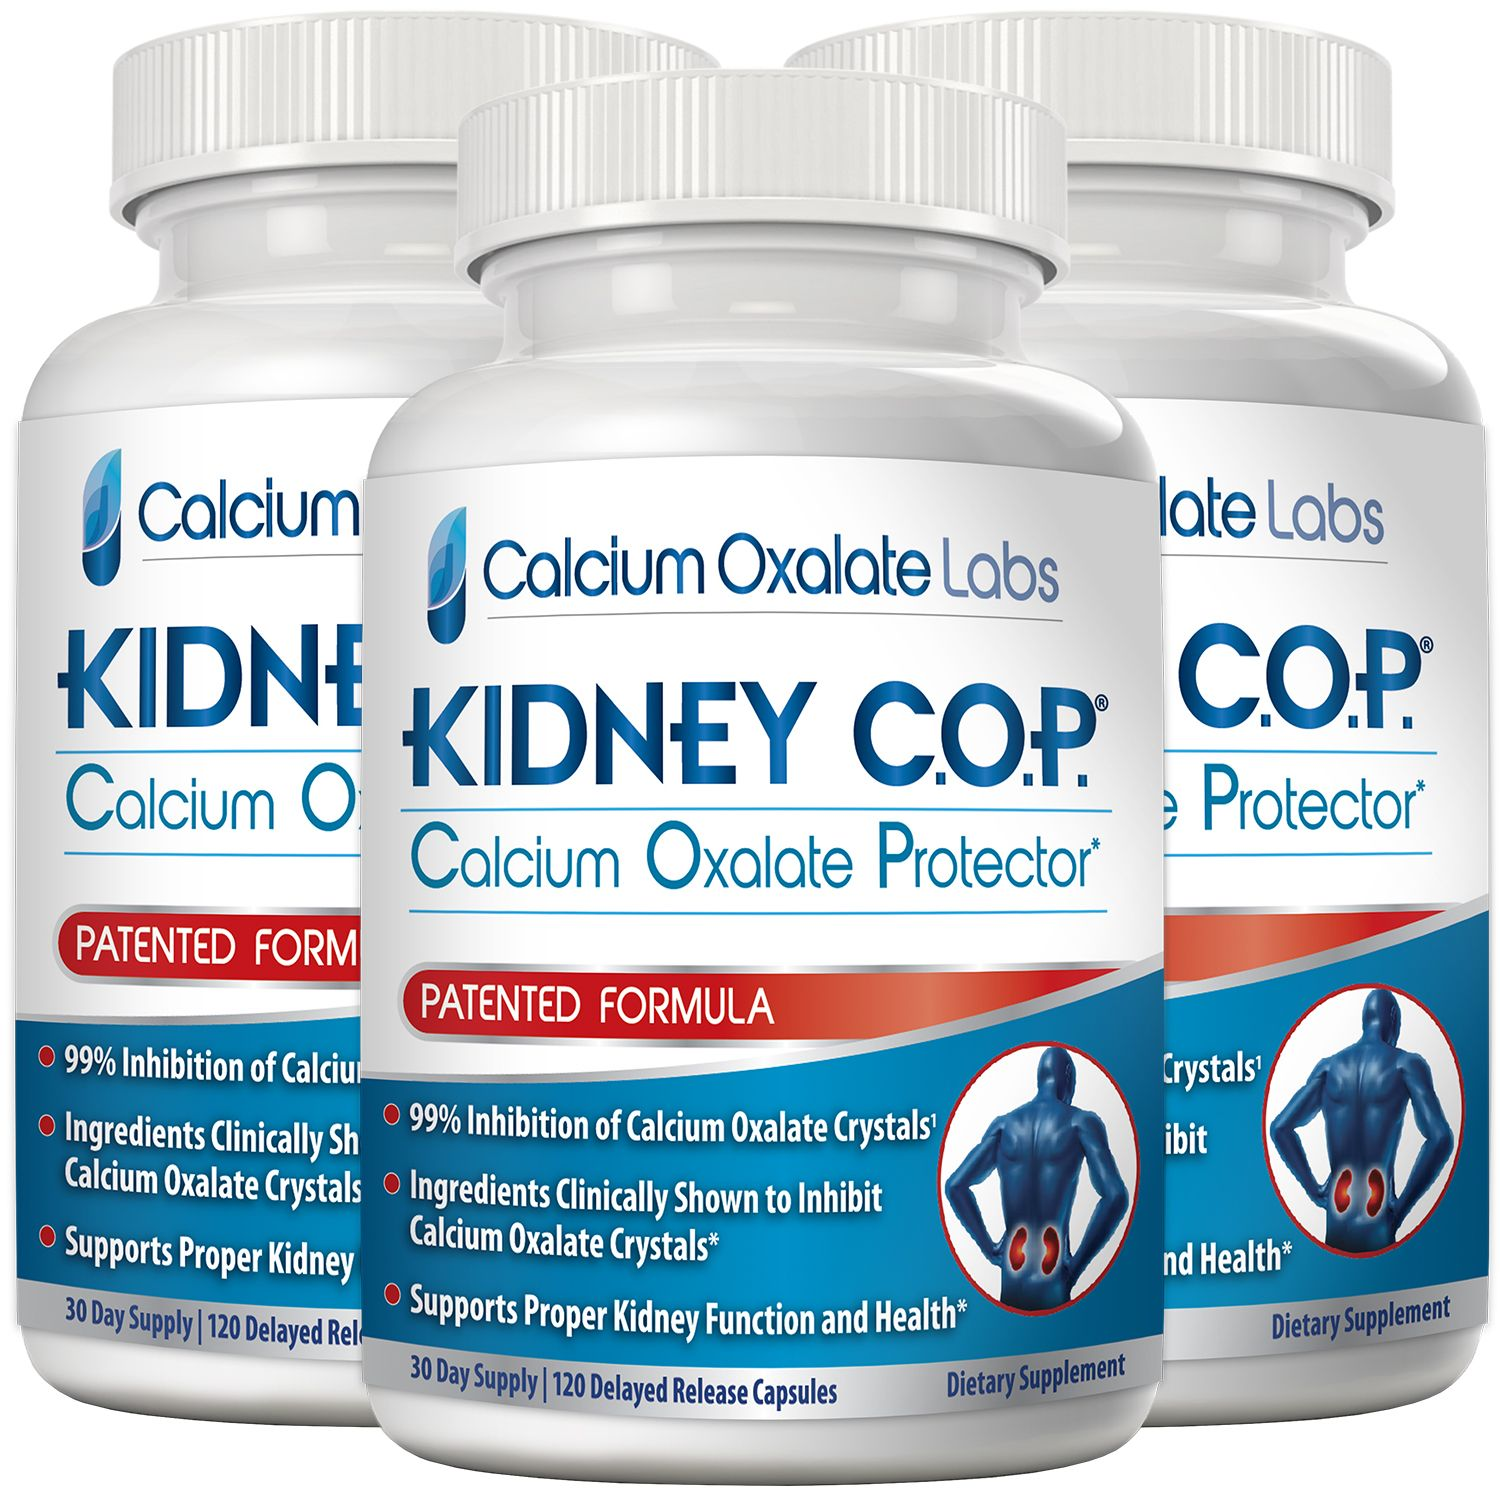 Kidney C O P Save 10 New 3 Pack Available On Amazon Com Low Oxalate Recipes Low Oxalate Kidney Supplements